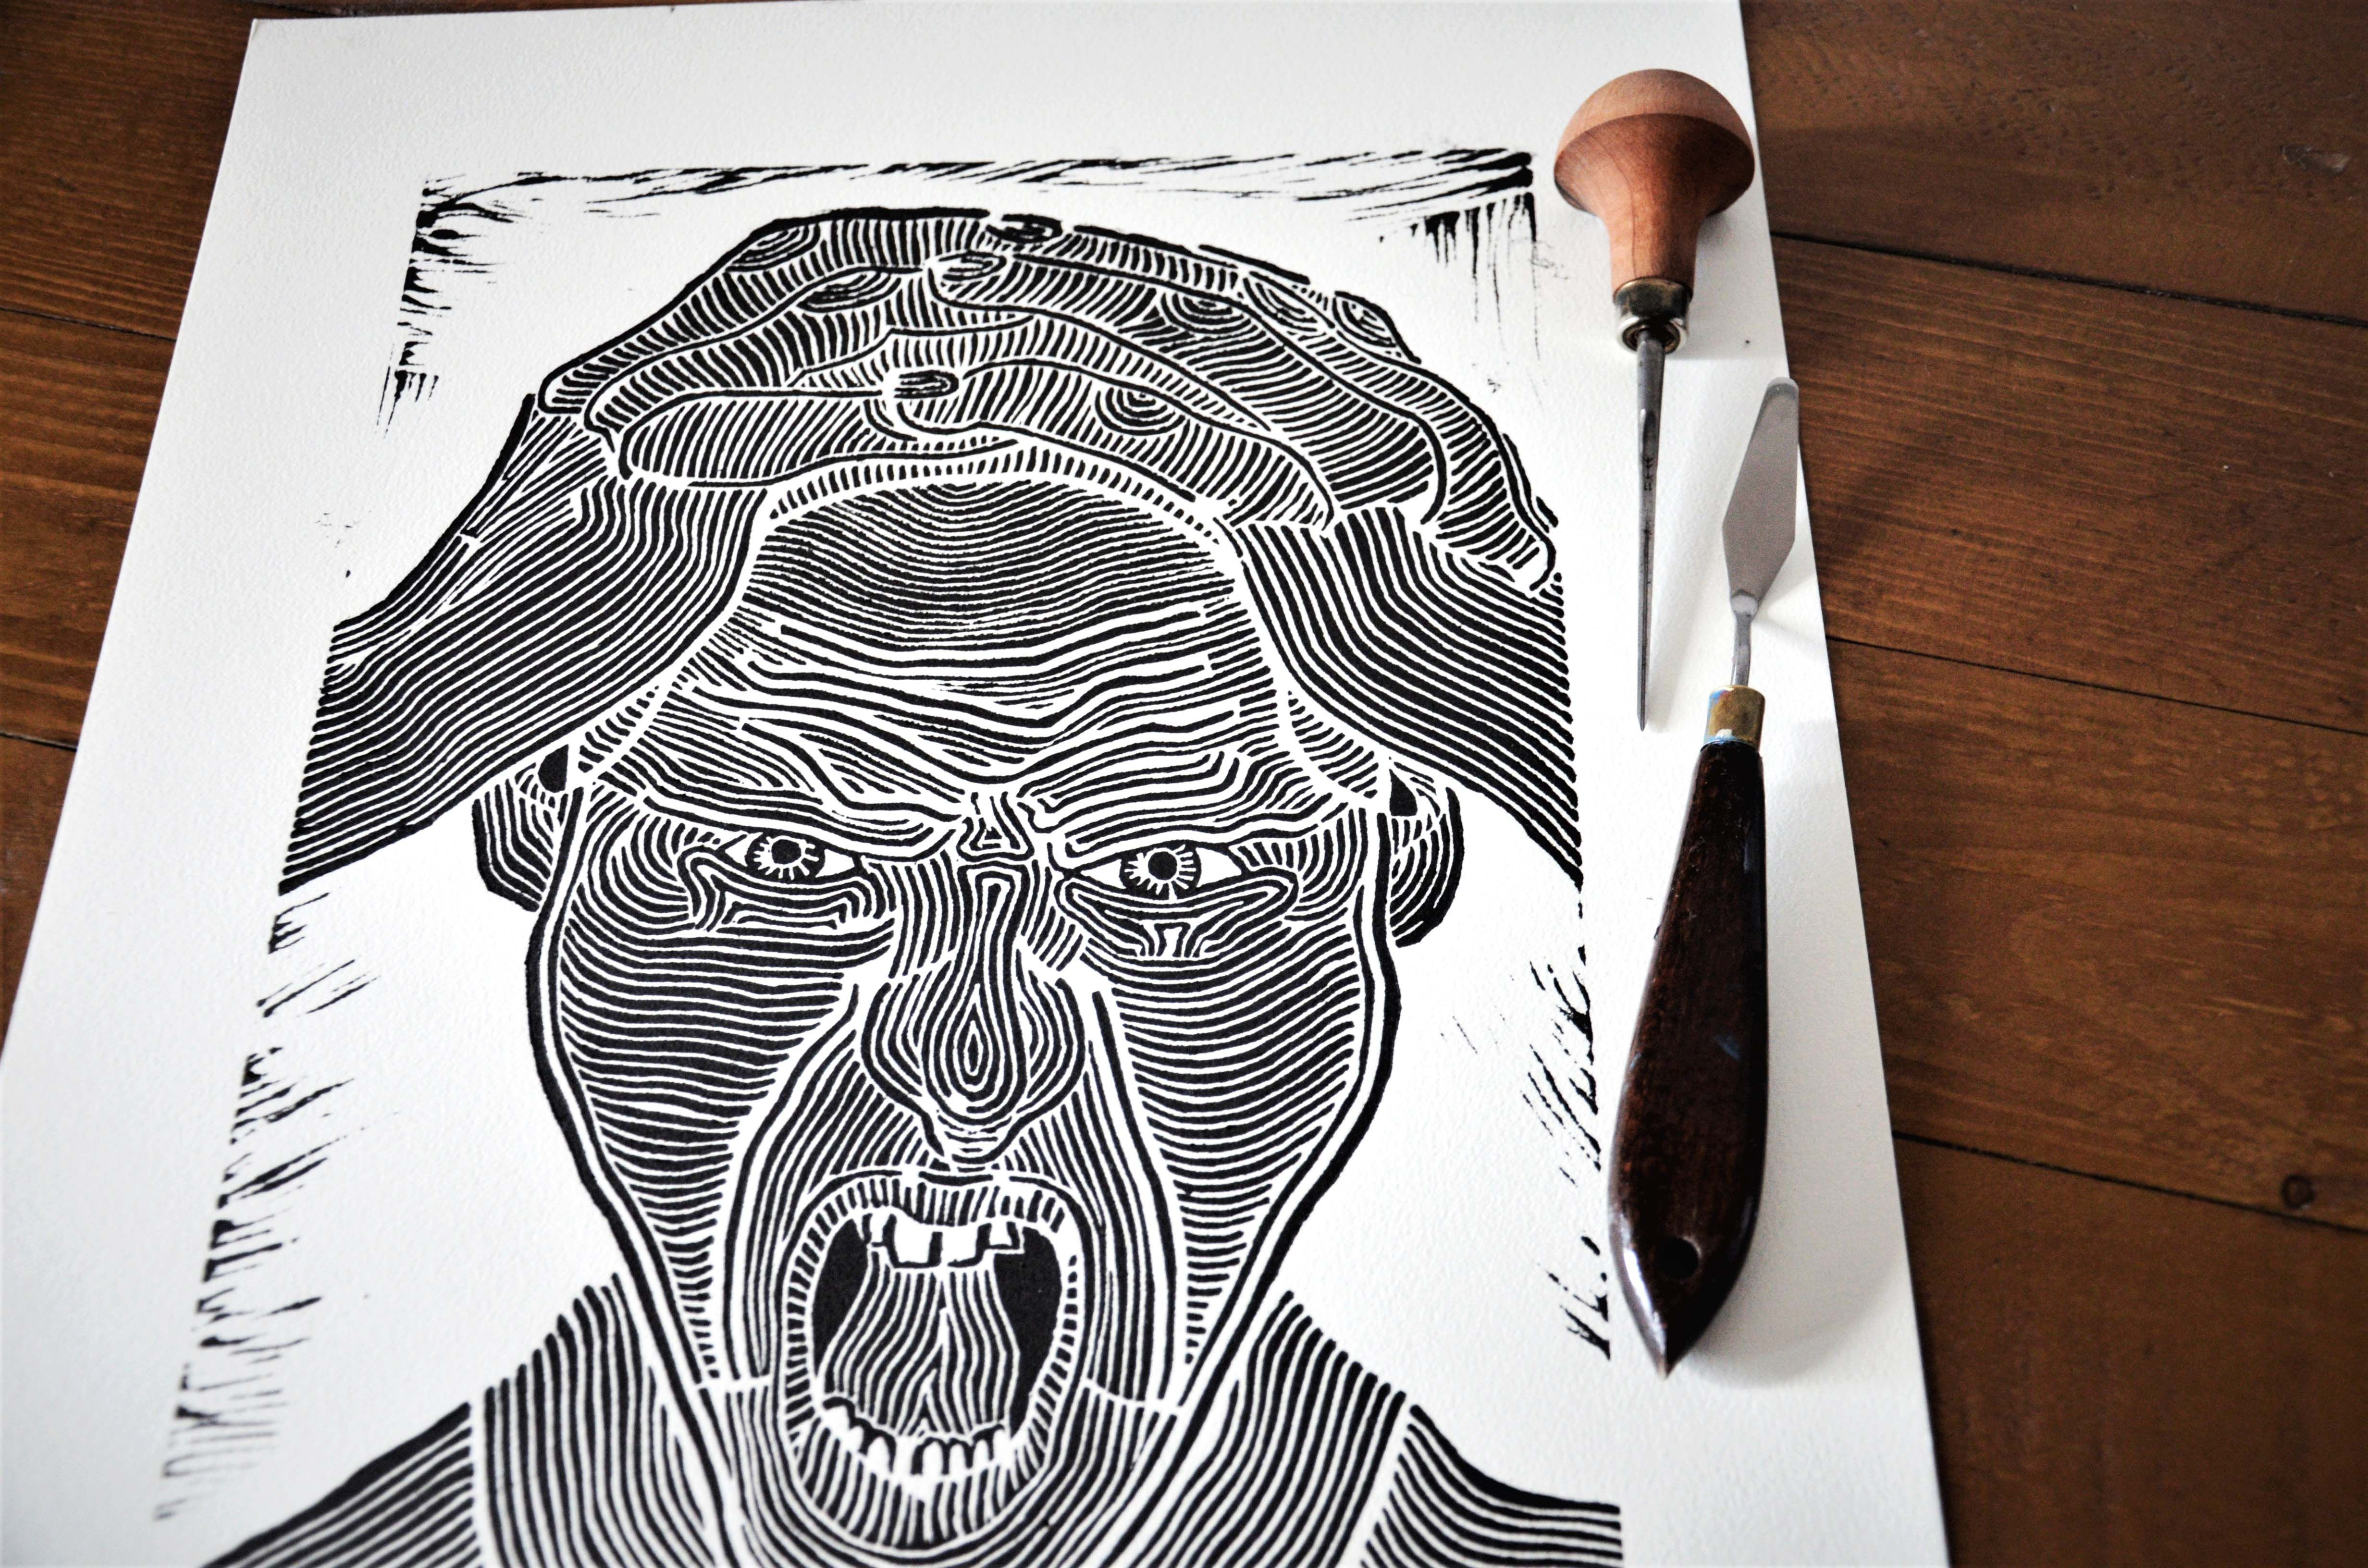 limited to the Din A3 Psychedelic Original linocut print